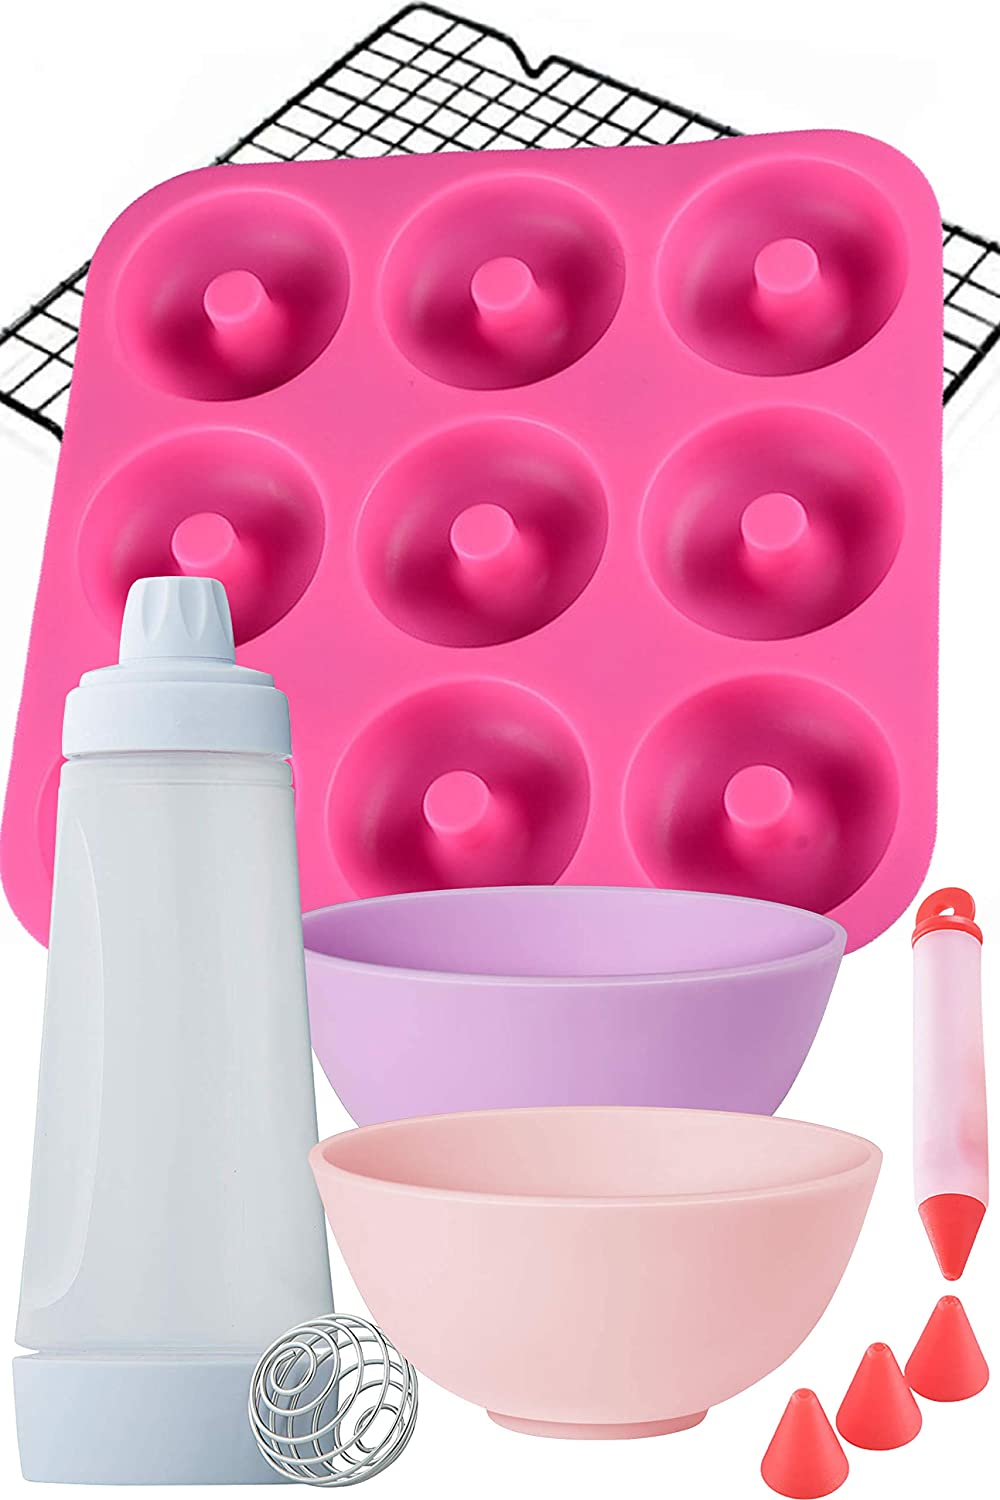 Dippin'Donutz Nonstick Silicone Donut Pan - Deluxe Baking and Decorating Supplies Bundle. Including Doughnut Maker Molds, Mixing Bottle, Cooling Rack, Dipping Bowls And Icing Decorarting Pen